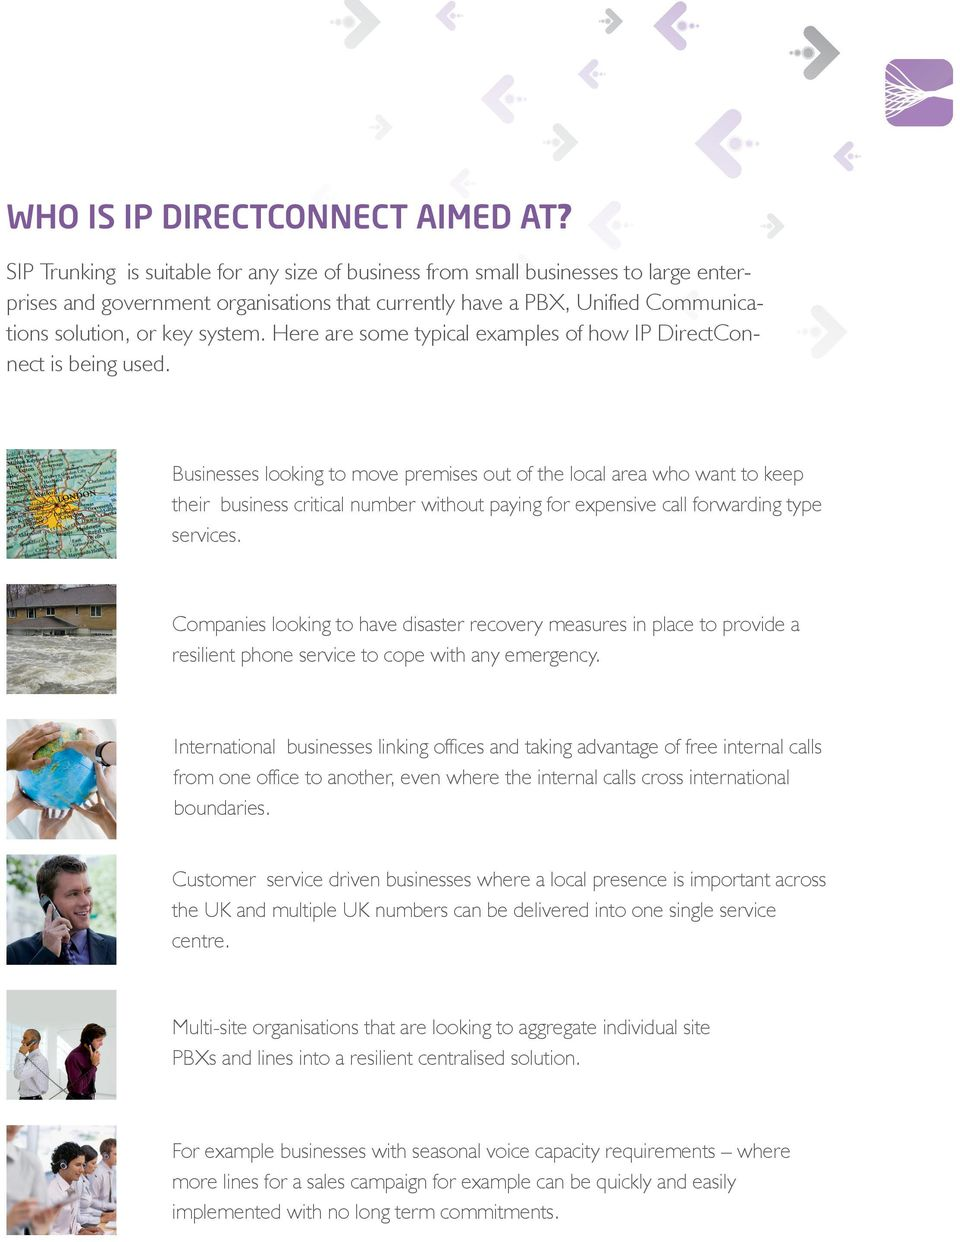 Here are some typical examples of how IP DirectConnect is being used.